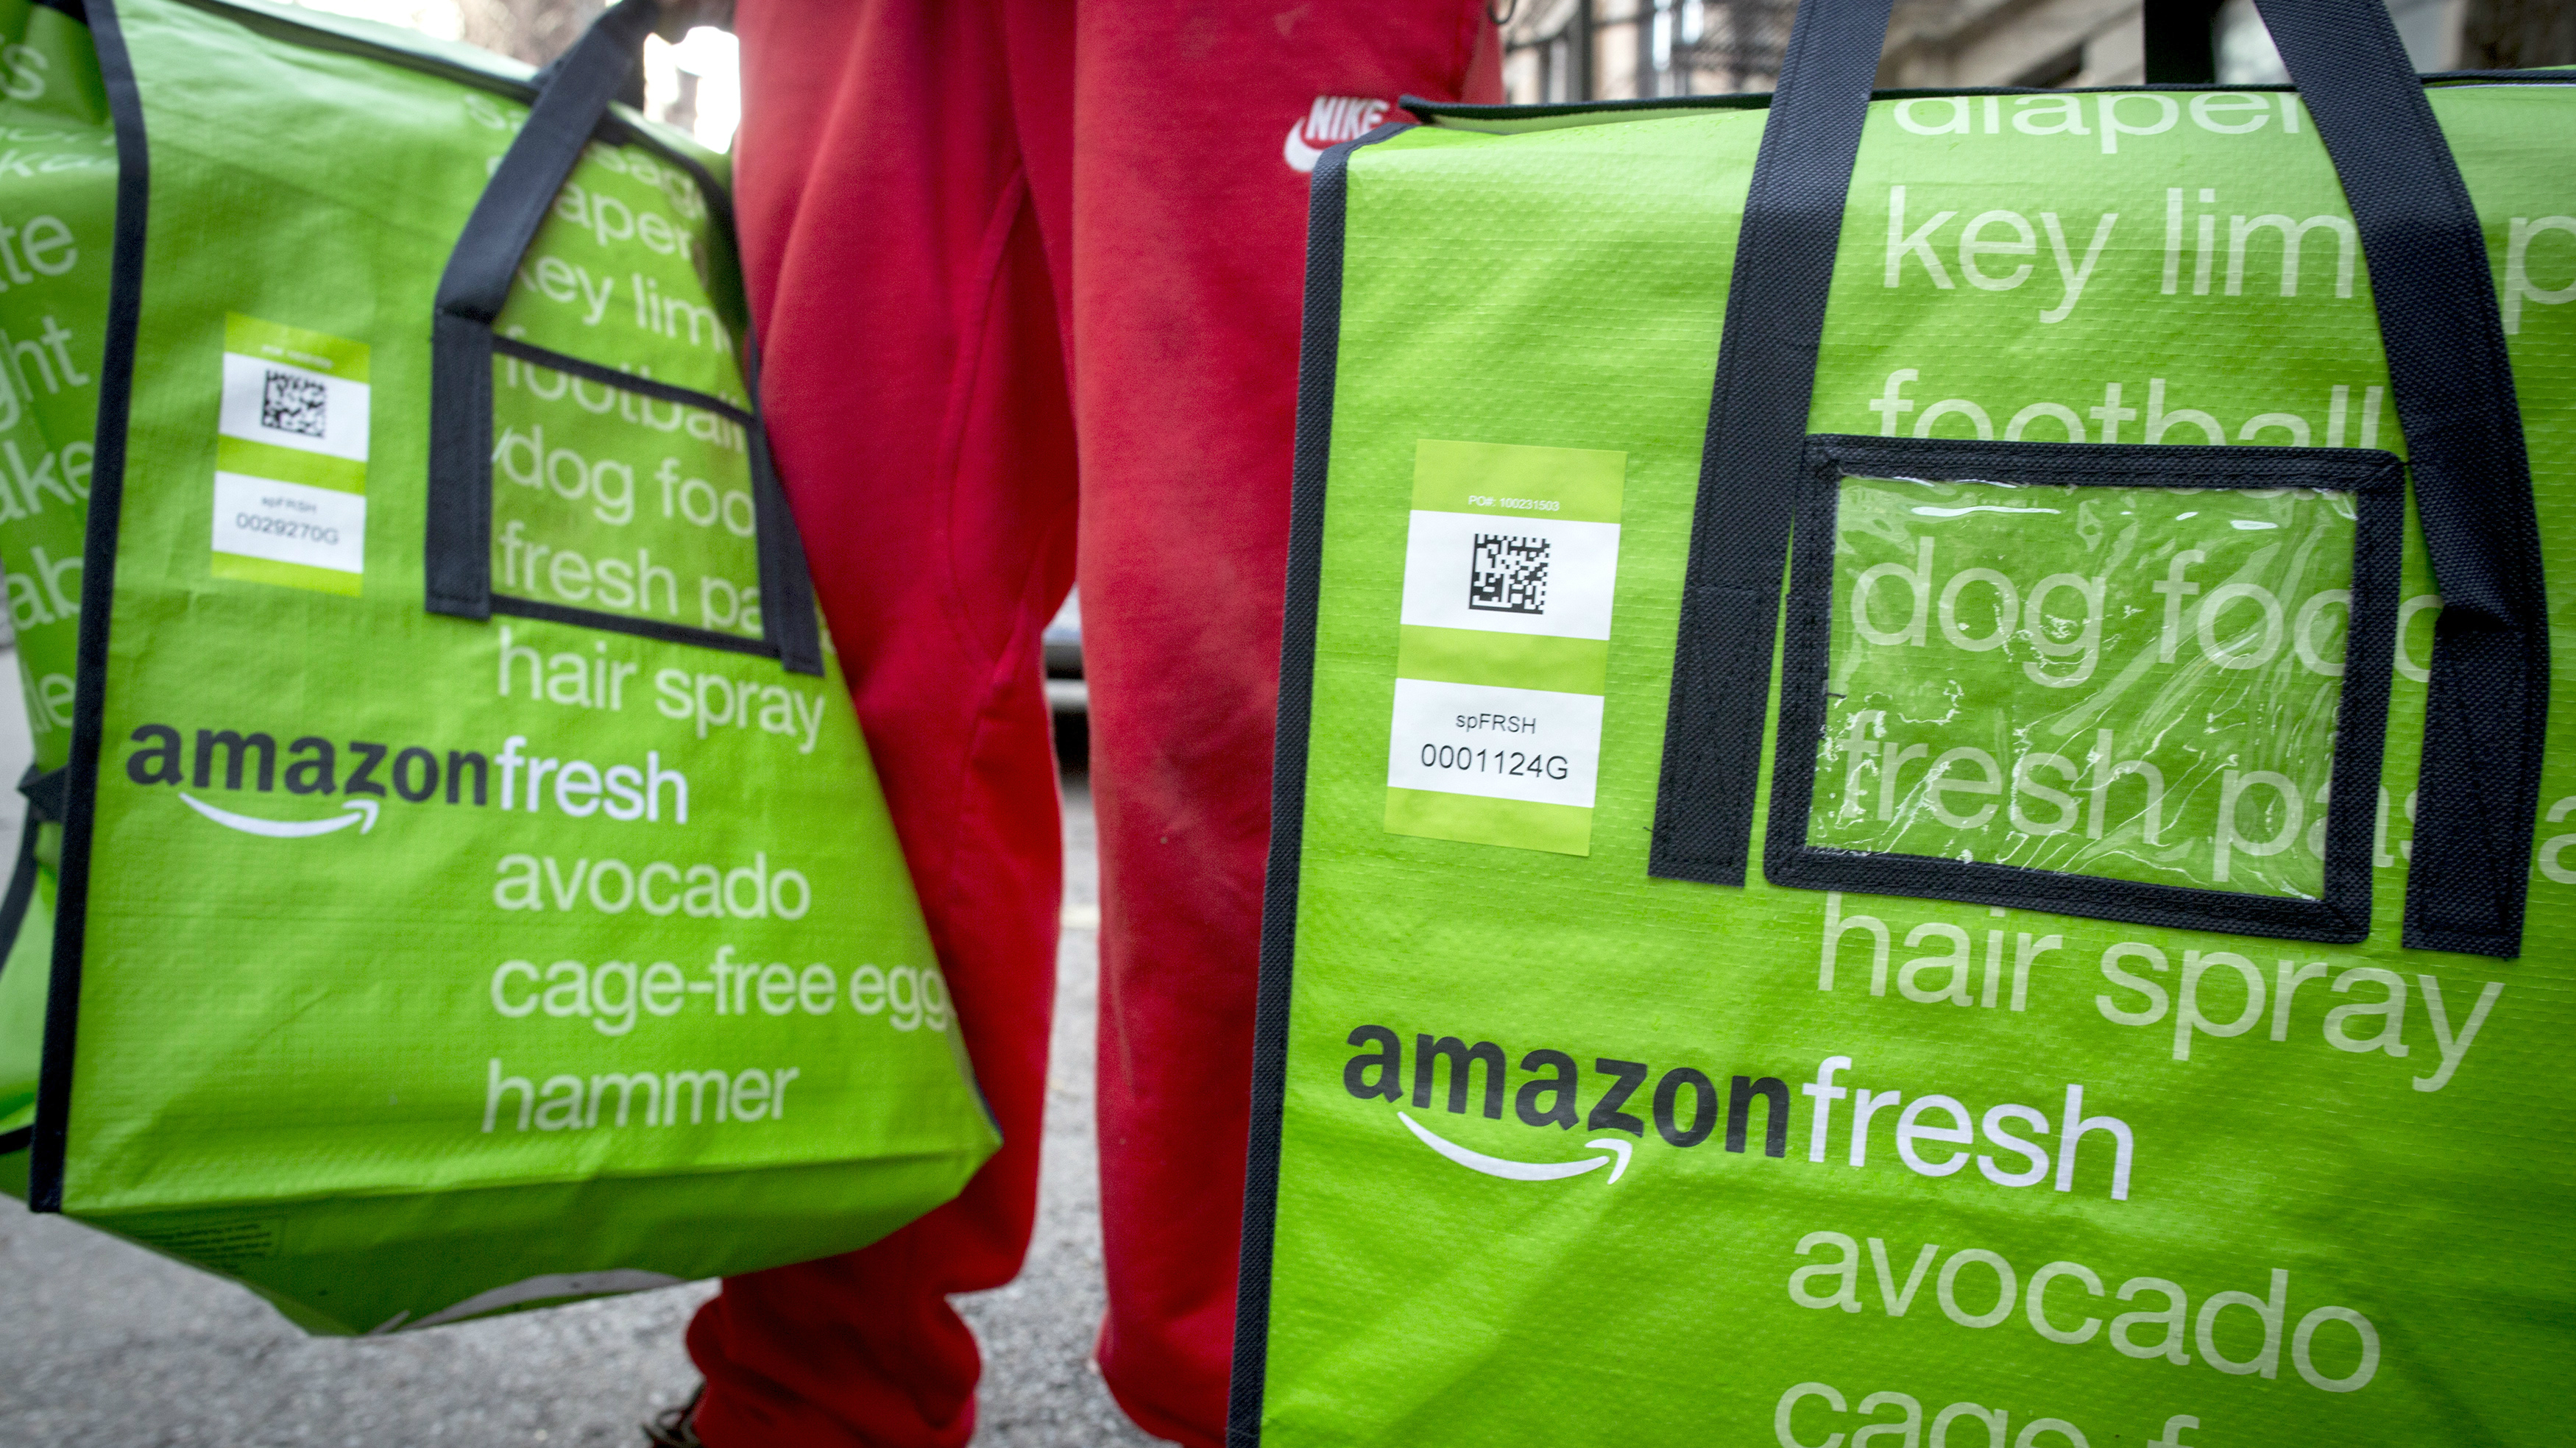 Amazon has found success in the UK for online grocery shopping, now its eyeing large cities across Europe.